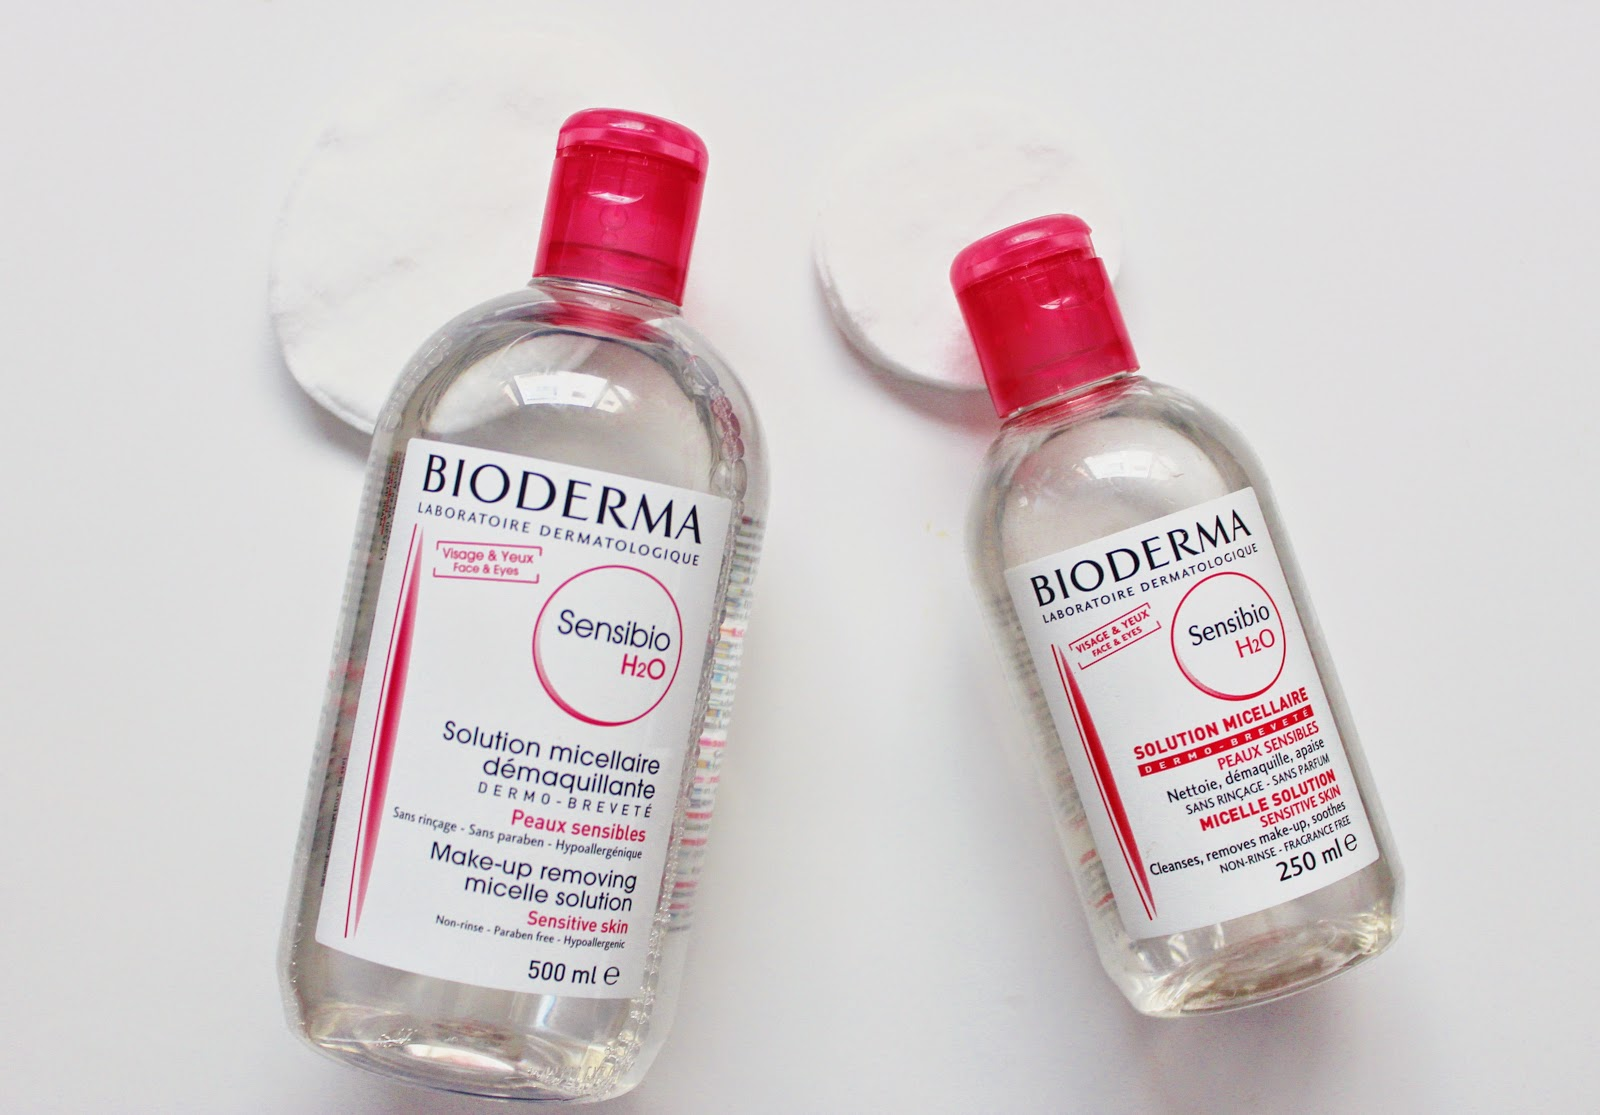 Bioderma Sensibio H2o Micelle Solution Theyellownotebook Sebium 500ml Ive Heard Of The From Blogosphere Its Adored And Labelled As Holy Grail Make Up Removal By Many Beauty Bloggers